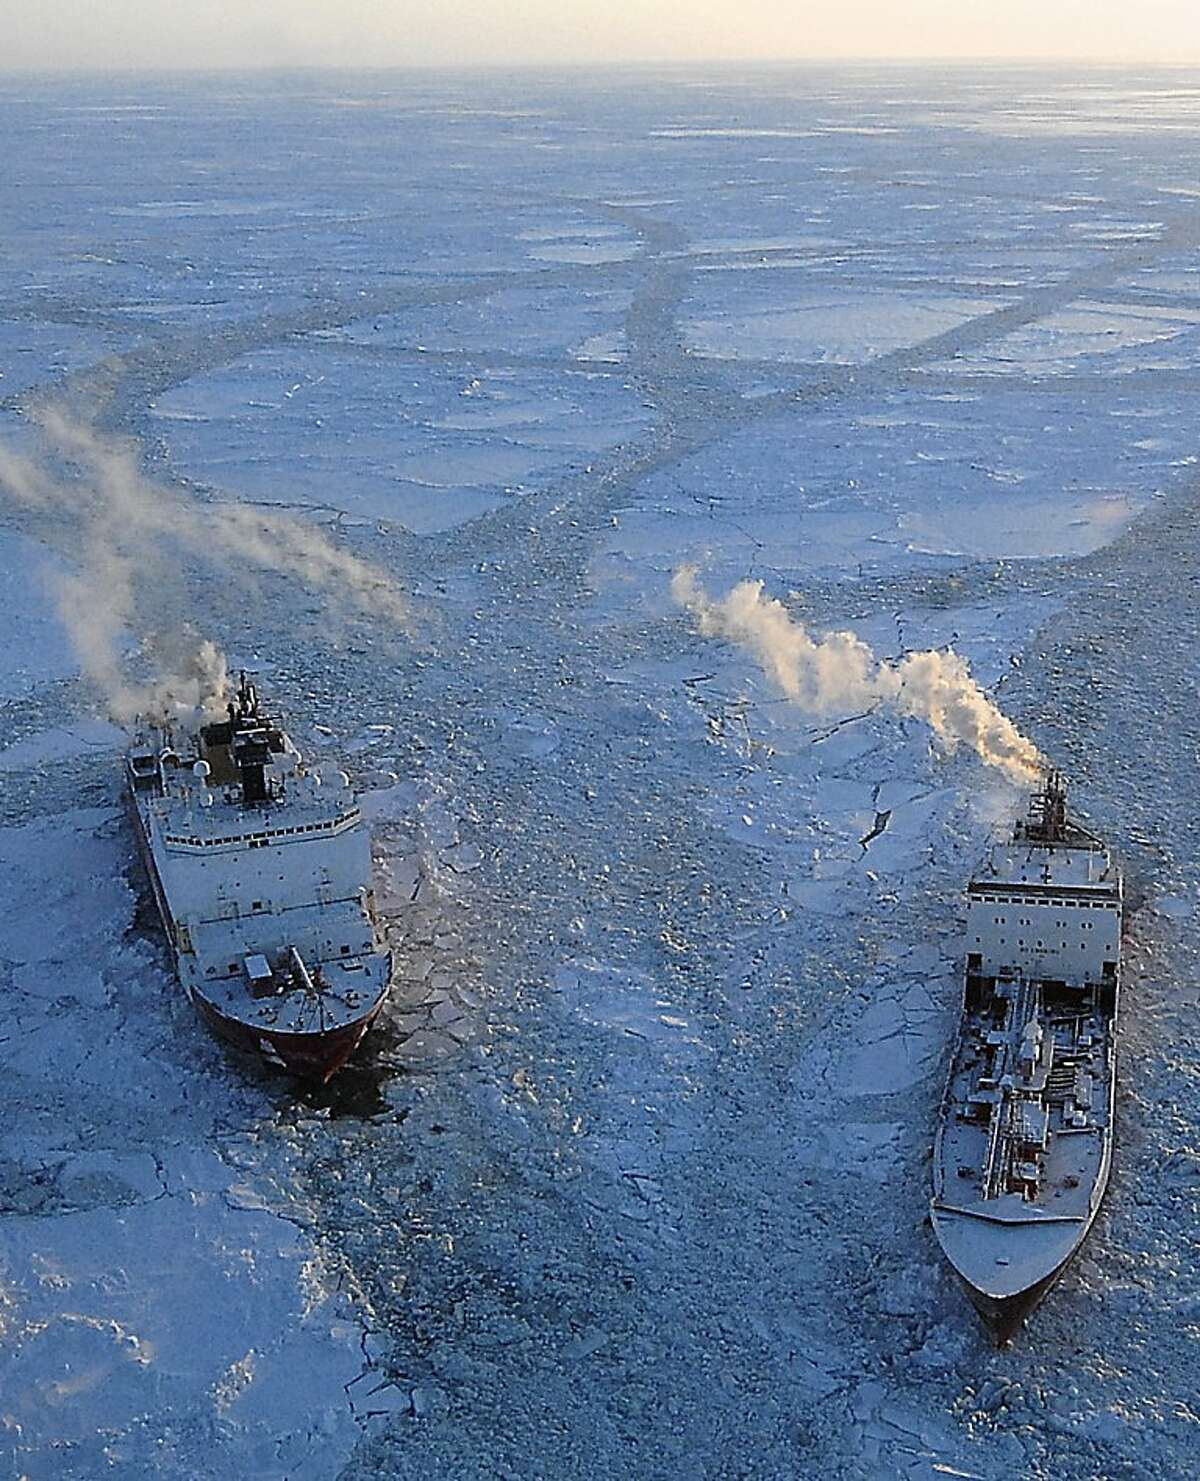 In this photo provided by the US Coast Guard, the cutter Healy, left, breaks ice around the Russian tanker Renda in the Bering Sea Tuesday, Jan. 10, 2012, 97 miles south of Nome, Alaska. The two vessels departed Dutch Harbor for Nome on Jan. 3, 2012, to deliver more than 1.3 million gallons of petroleum products. (AP Photo/U.S. Coast Guard/Petty Officer 1st Class Sara Francis)